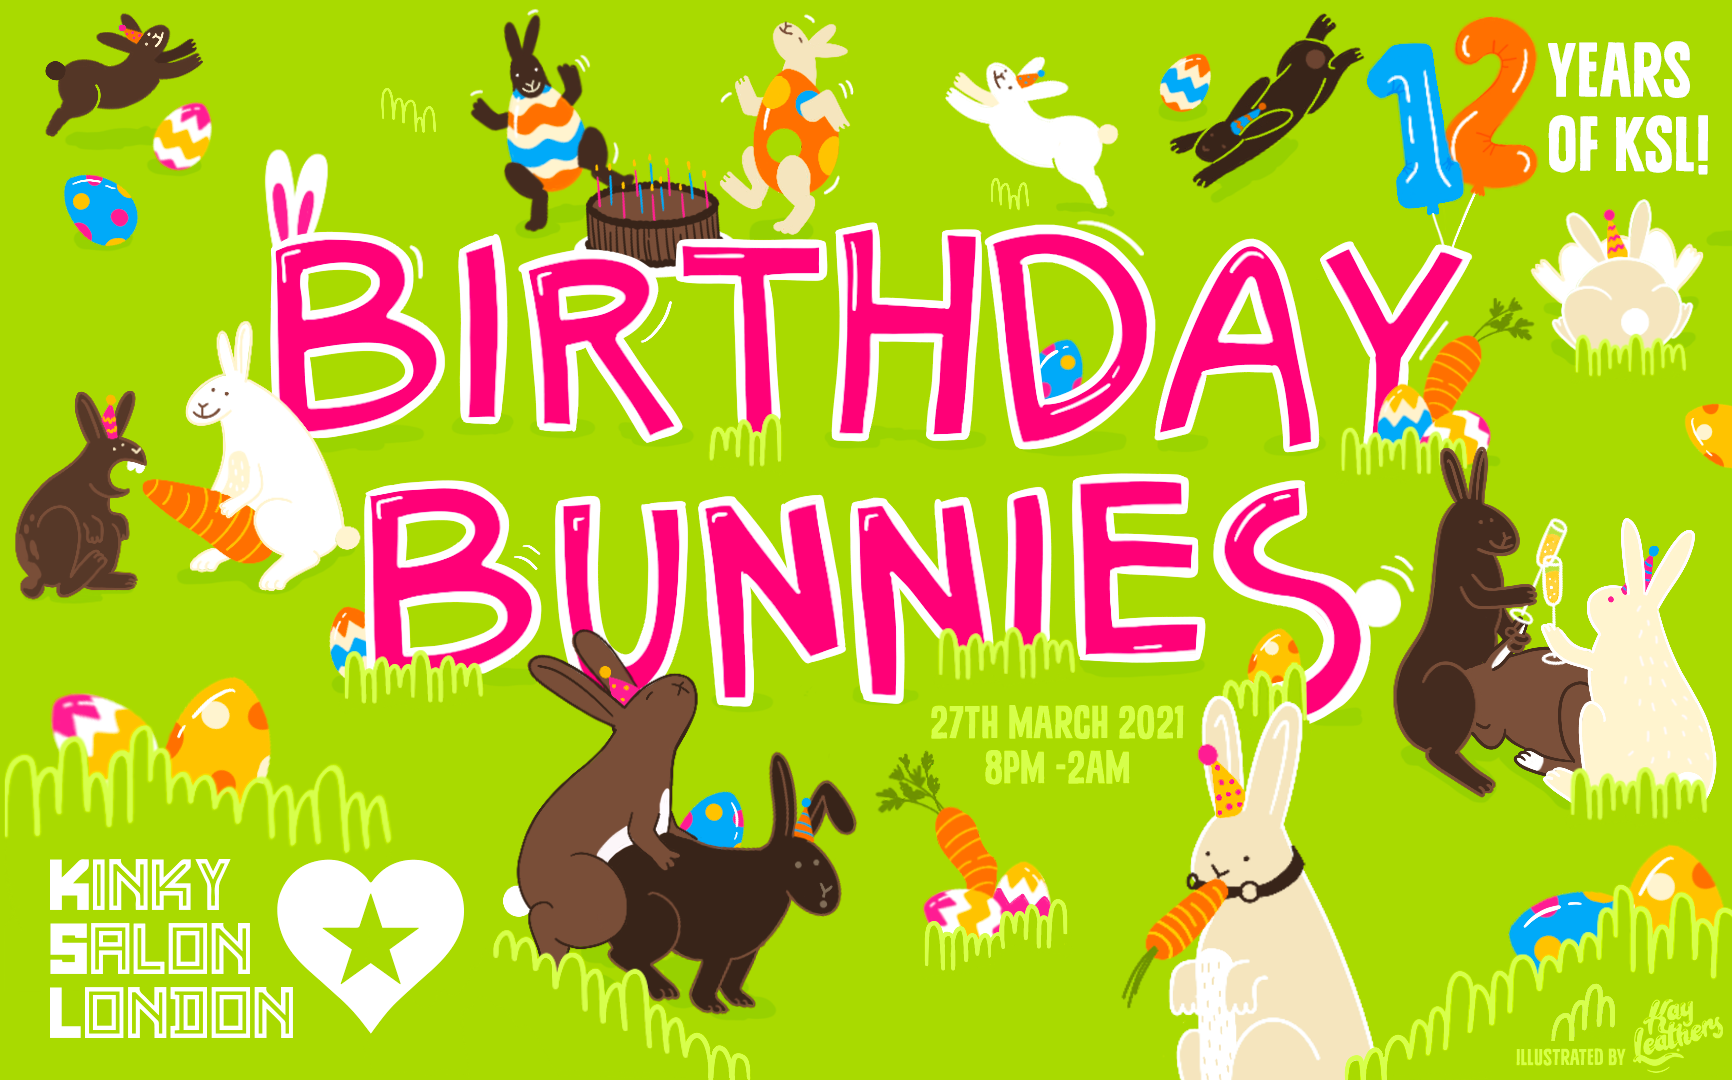 Birthday Bunnies! Cartoon images of naughty bunnies frolicking